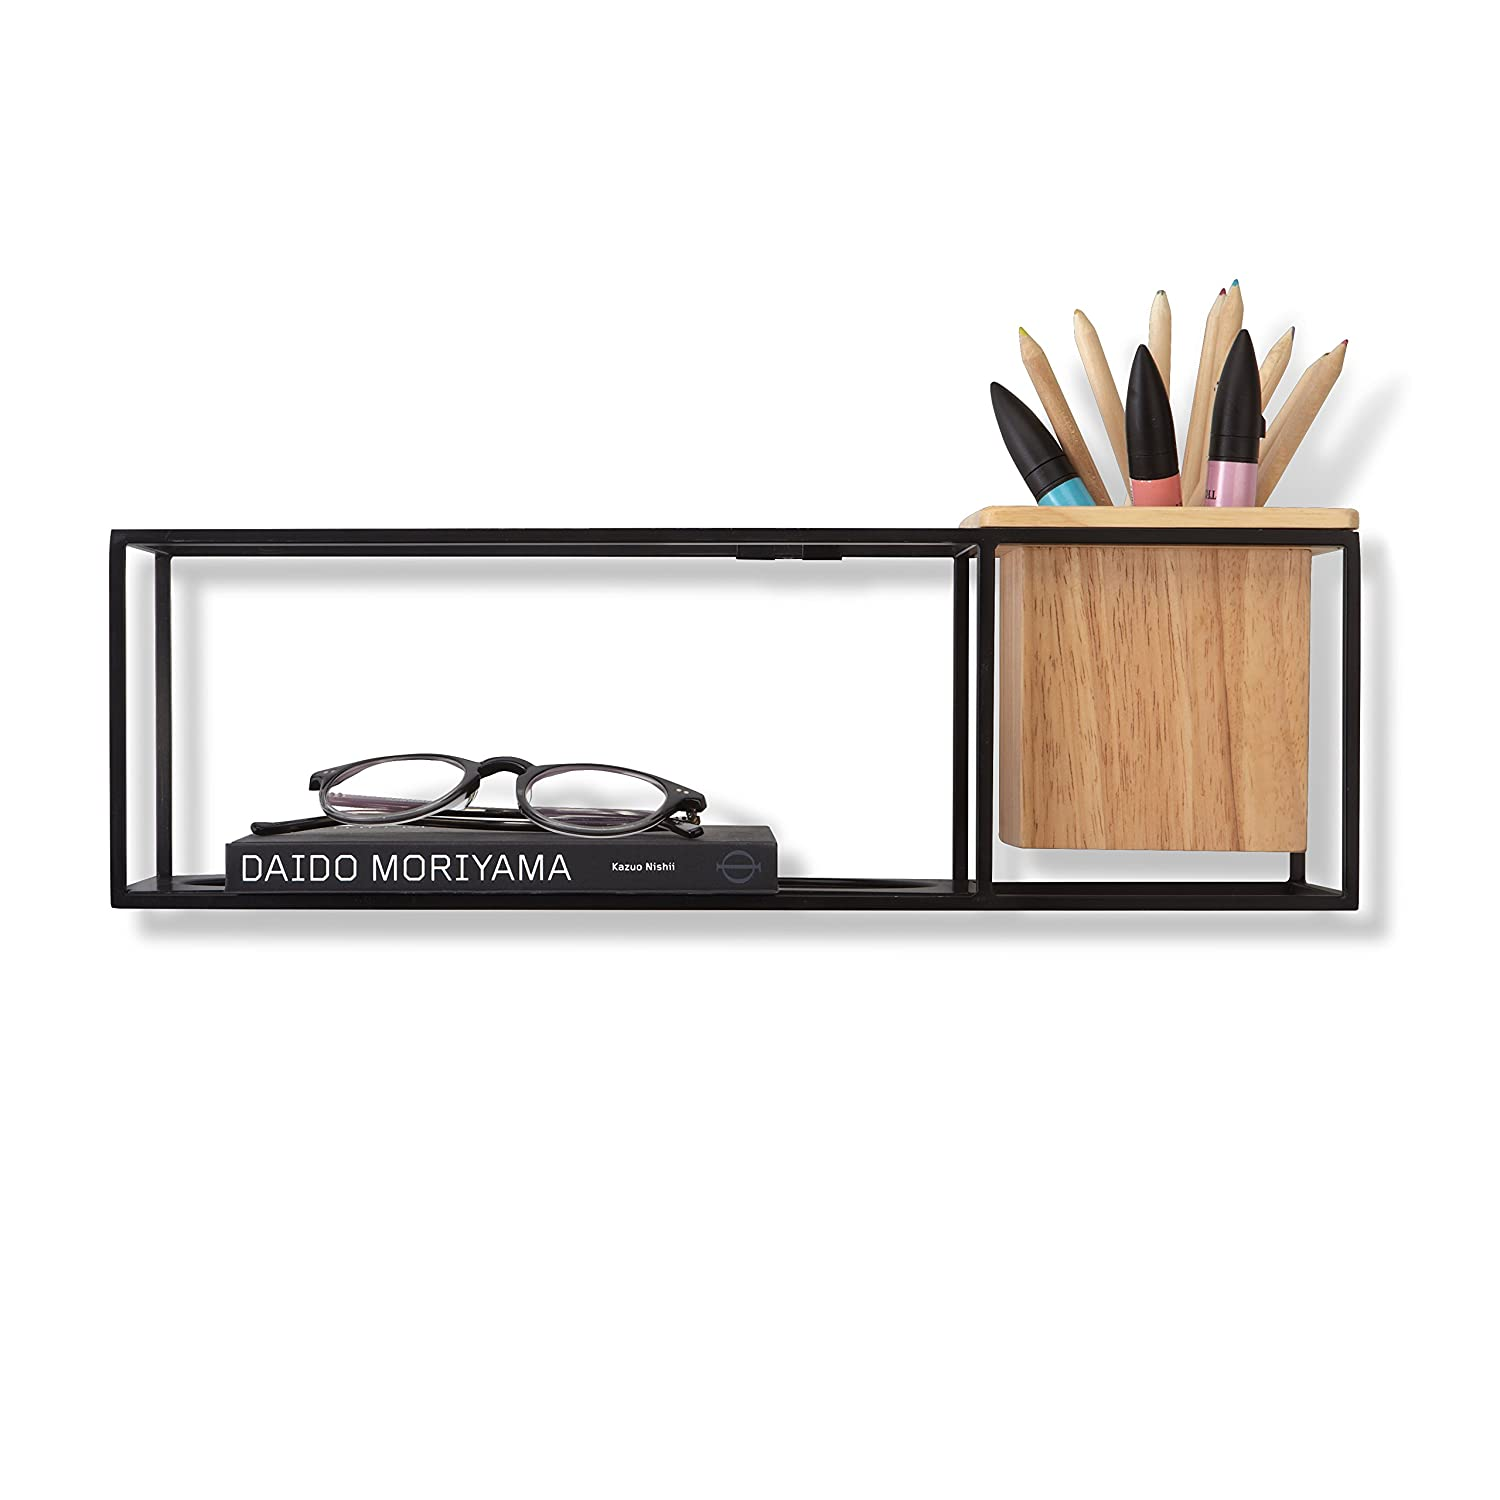 Amazon com  Umbra Cubist Floating Wall Shelf  Small  Black  Home   Kitchen. Amazon com  Umbra Cubist Floating Wall Shelf  Small  Black  Home